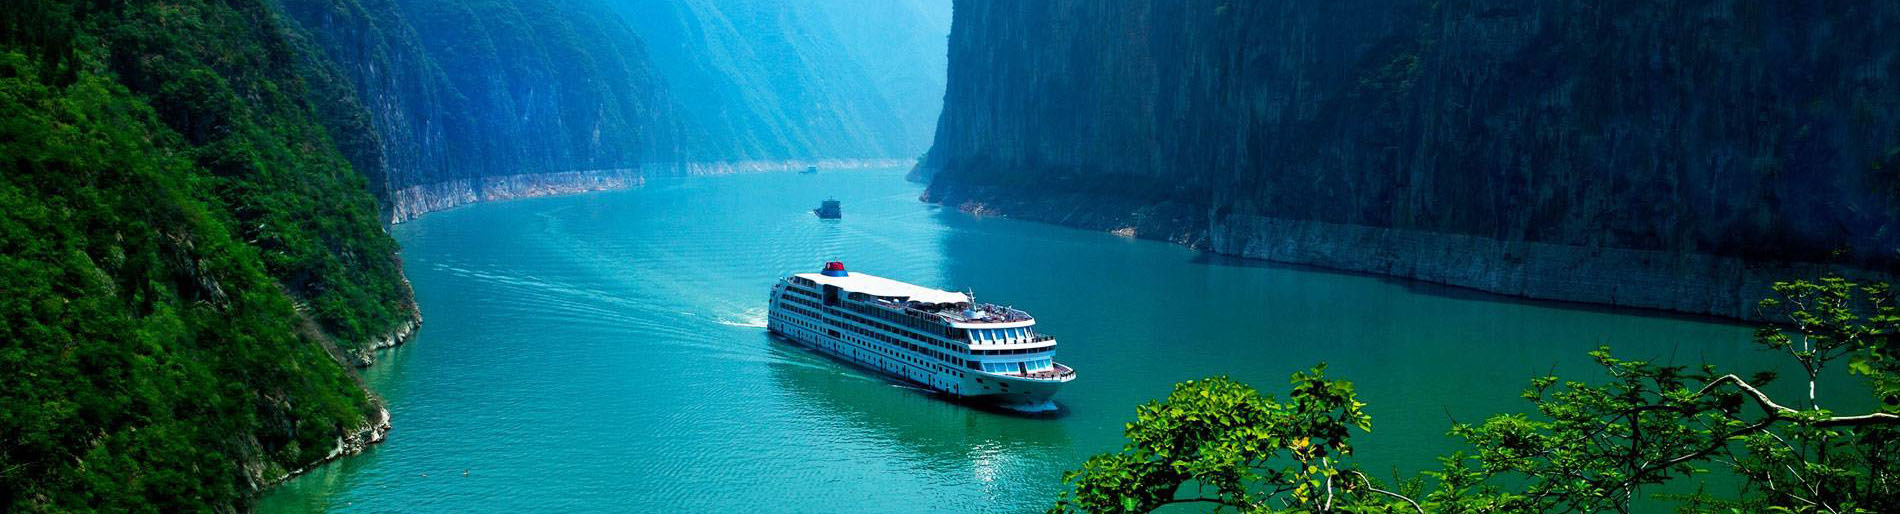 Yangtze River, the world's 3rd longest river with amazing cultural & natural views